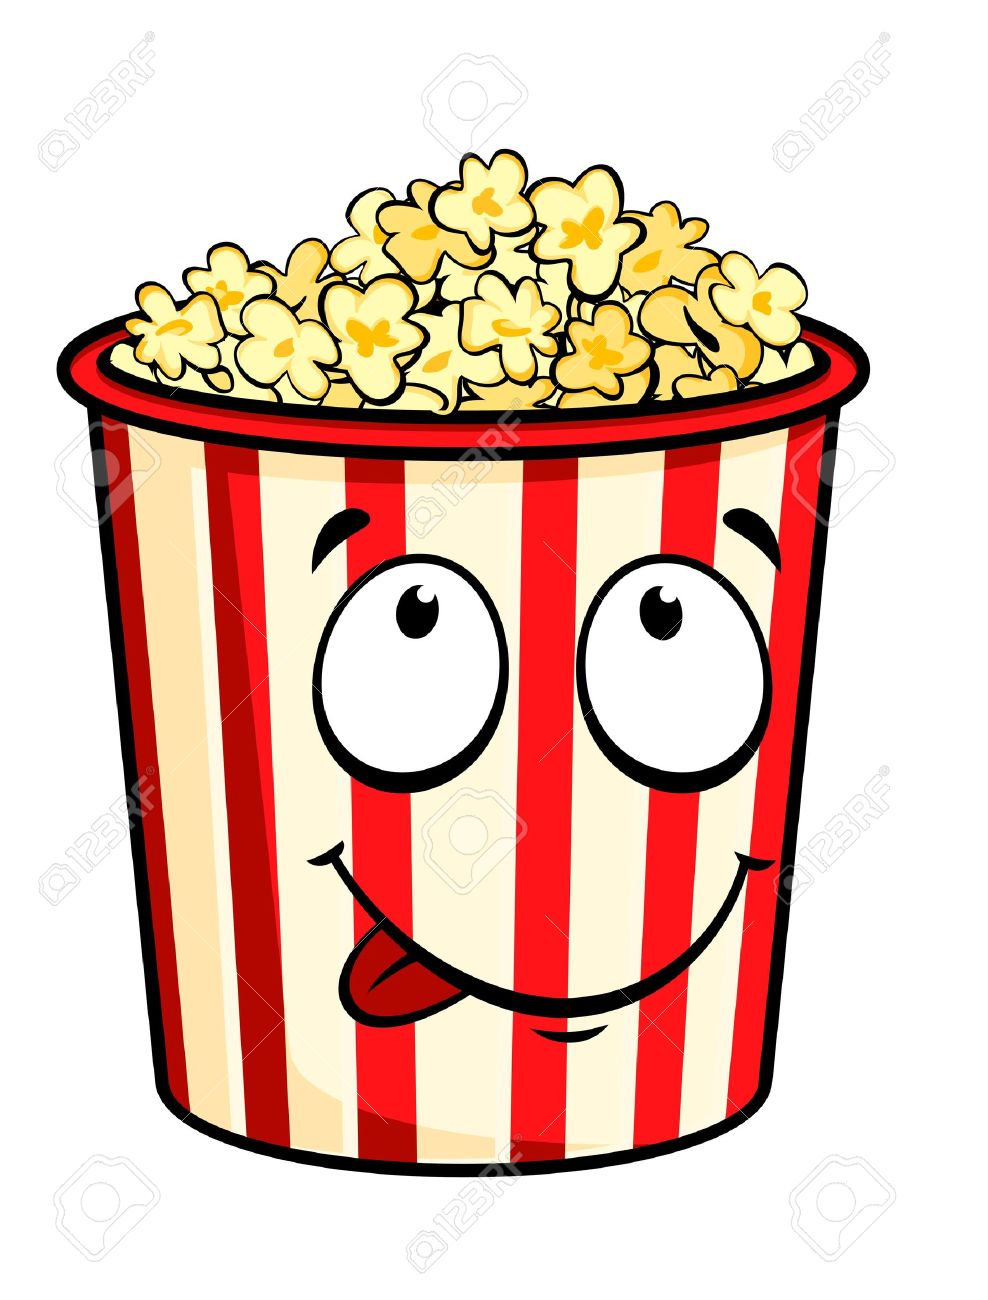 Cartoon Popcorn Isolated On White For Fastfood Design Royalty Free Cliparts Vectors And Stock Illustration Image 9609389